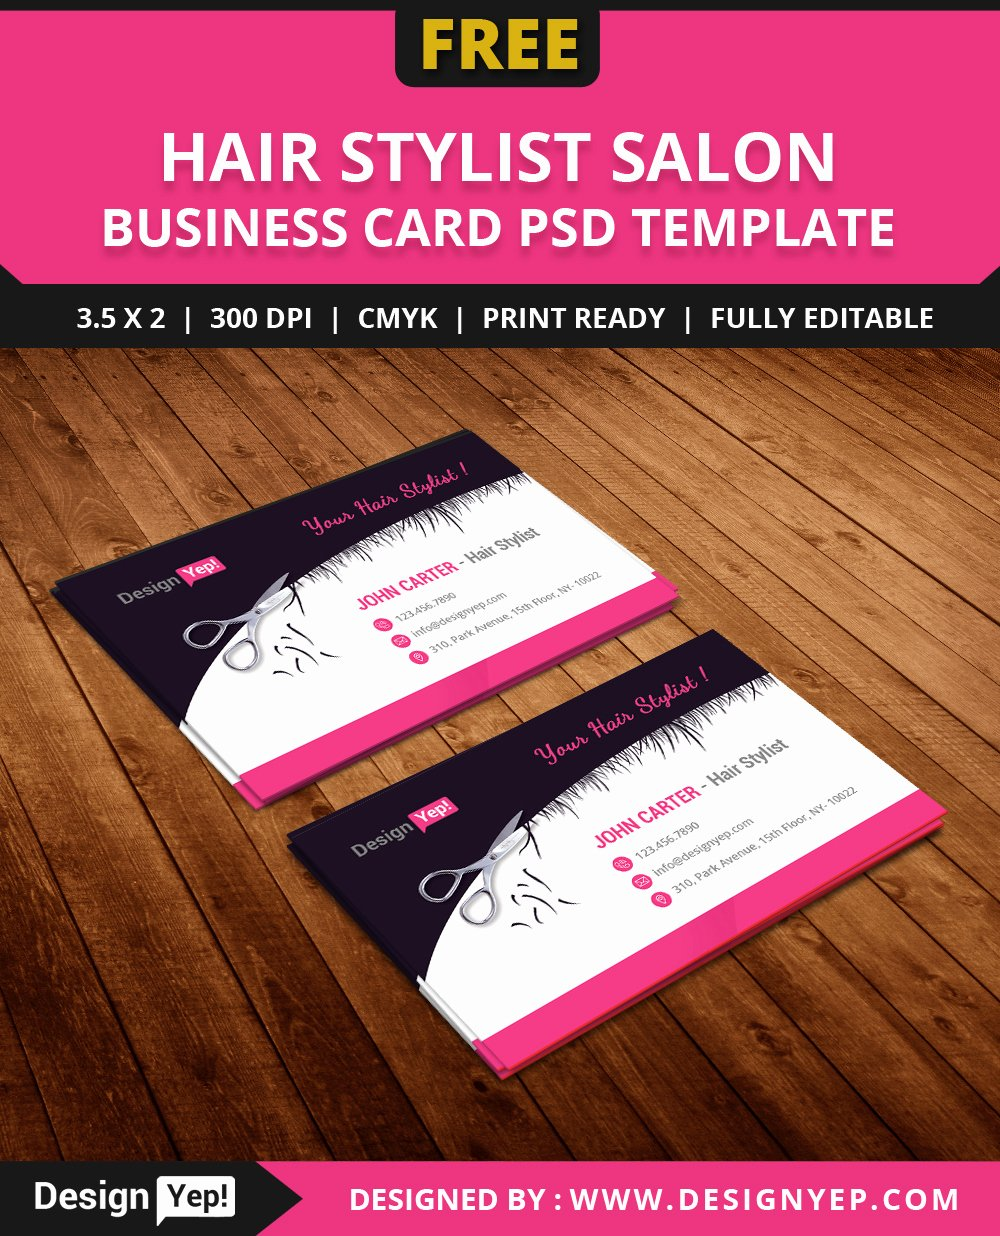 Hair Salon Business Card Best Of Free Hair Stylist Salon Business Card Template Psd Designyep